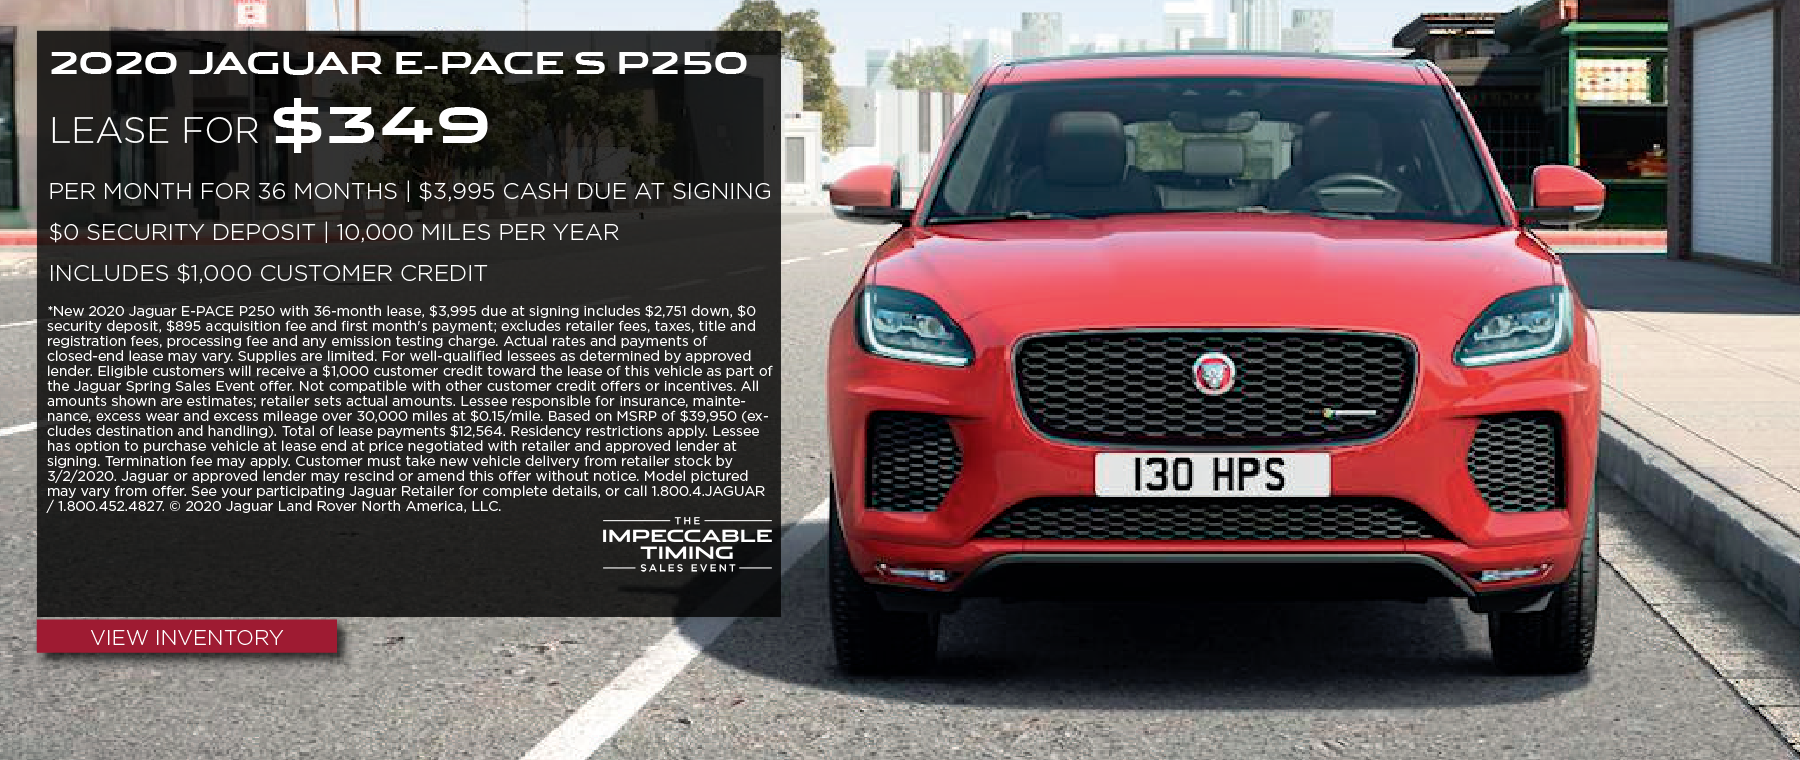 2020 JAGUAR E-PACE P250. $349 PER MONTH. 36 MONTH LEASE TERM. $3,995 CASH DUE AT SIGNING. INCLUDES $1,000 CUSTOMER CREDIT.  $0 SECURITY DEPOSIT. 10,000 MILES PER YEAR. OFFER ENDS 3/2/2020. VIEW INVENTORY. RED JAGUAR E-PACE DRIVING THROUGH CITY.